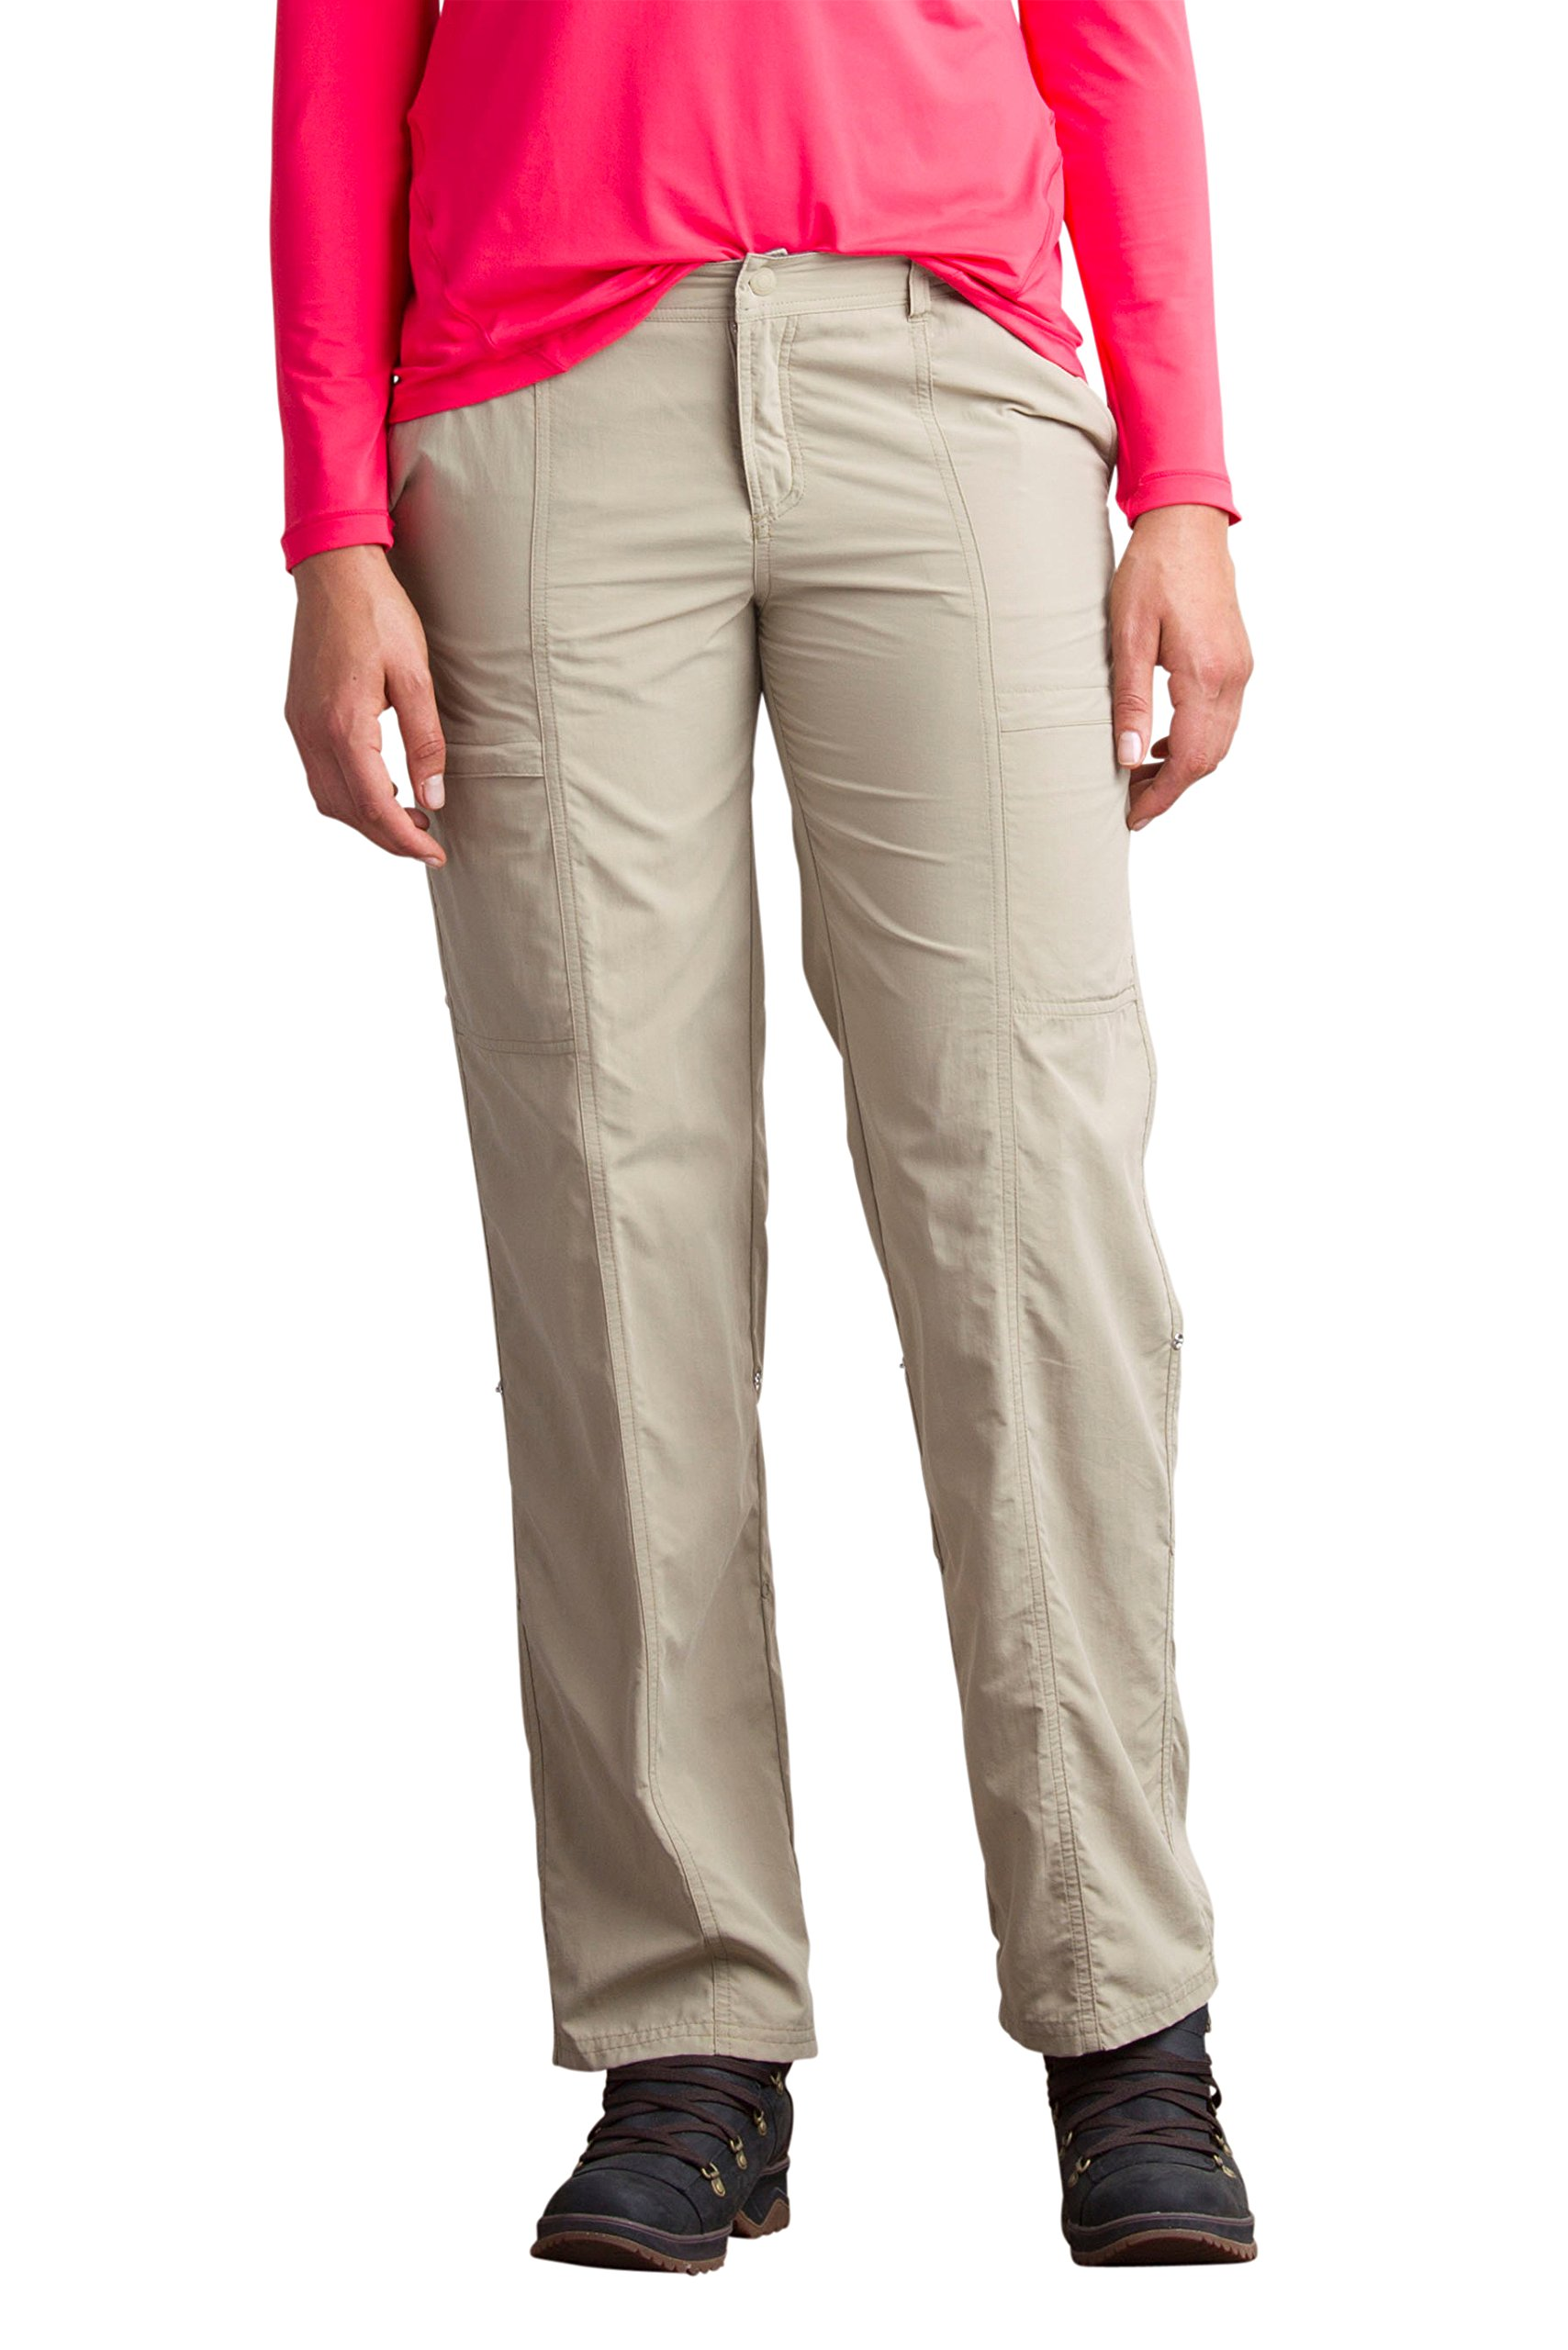 ExOfficio Women's Sol Cool Nomad Pants, Tawny, 10